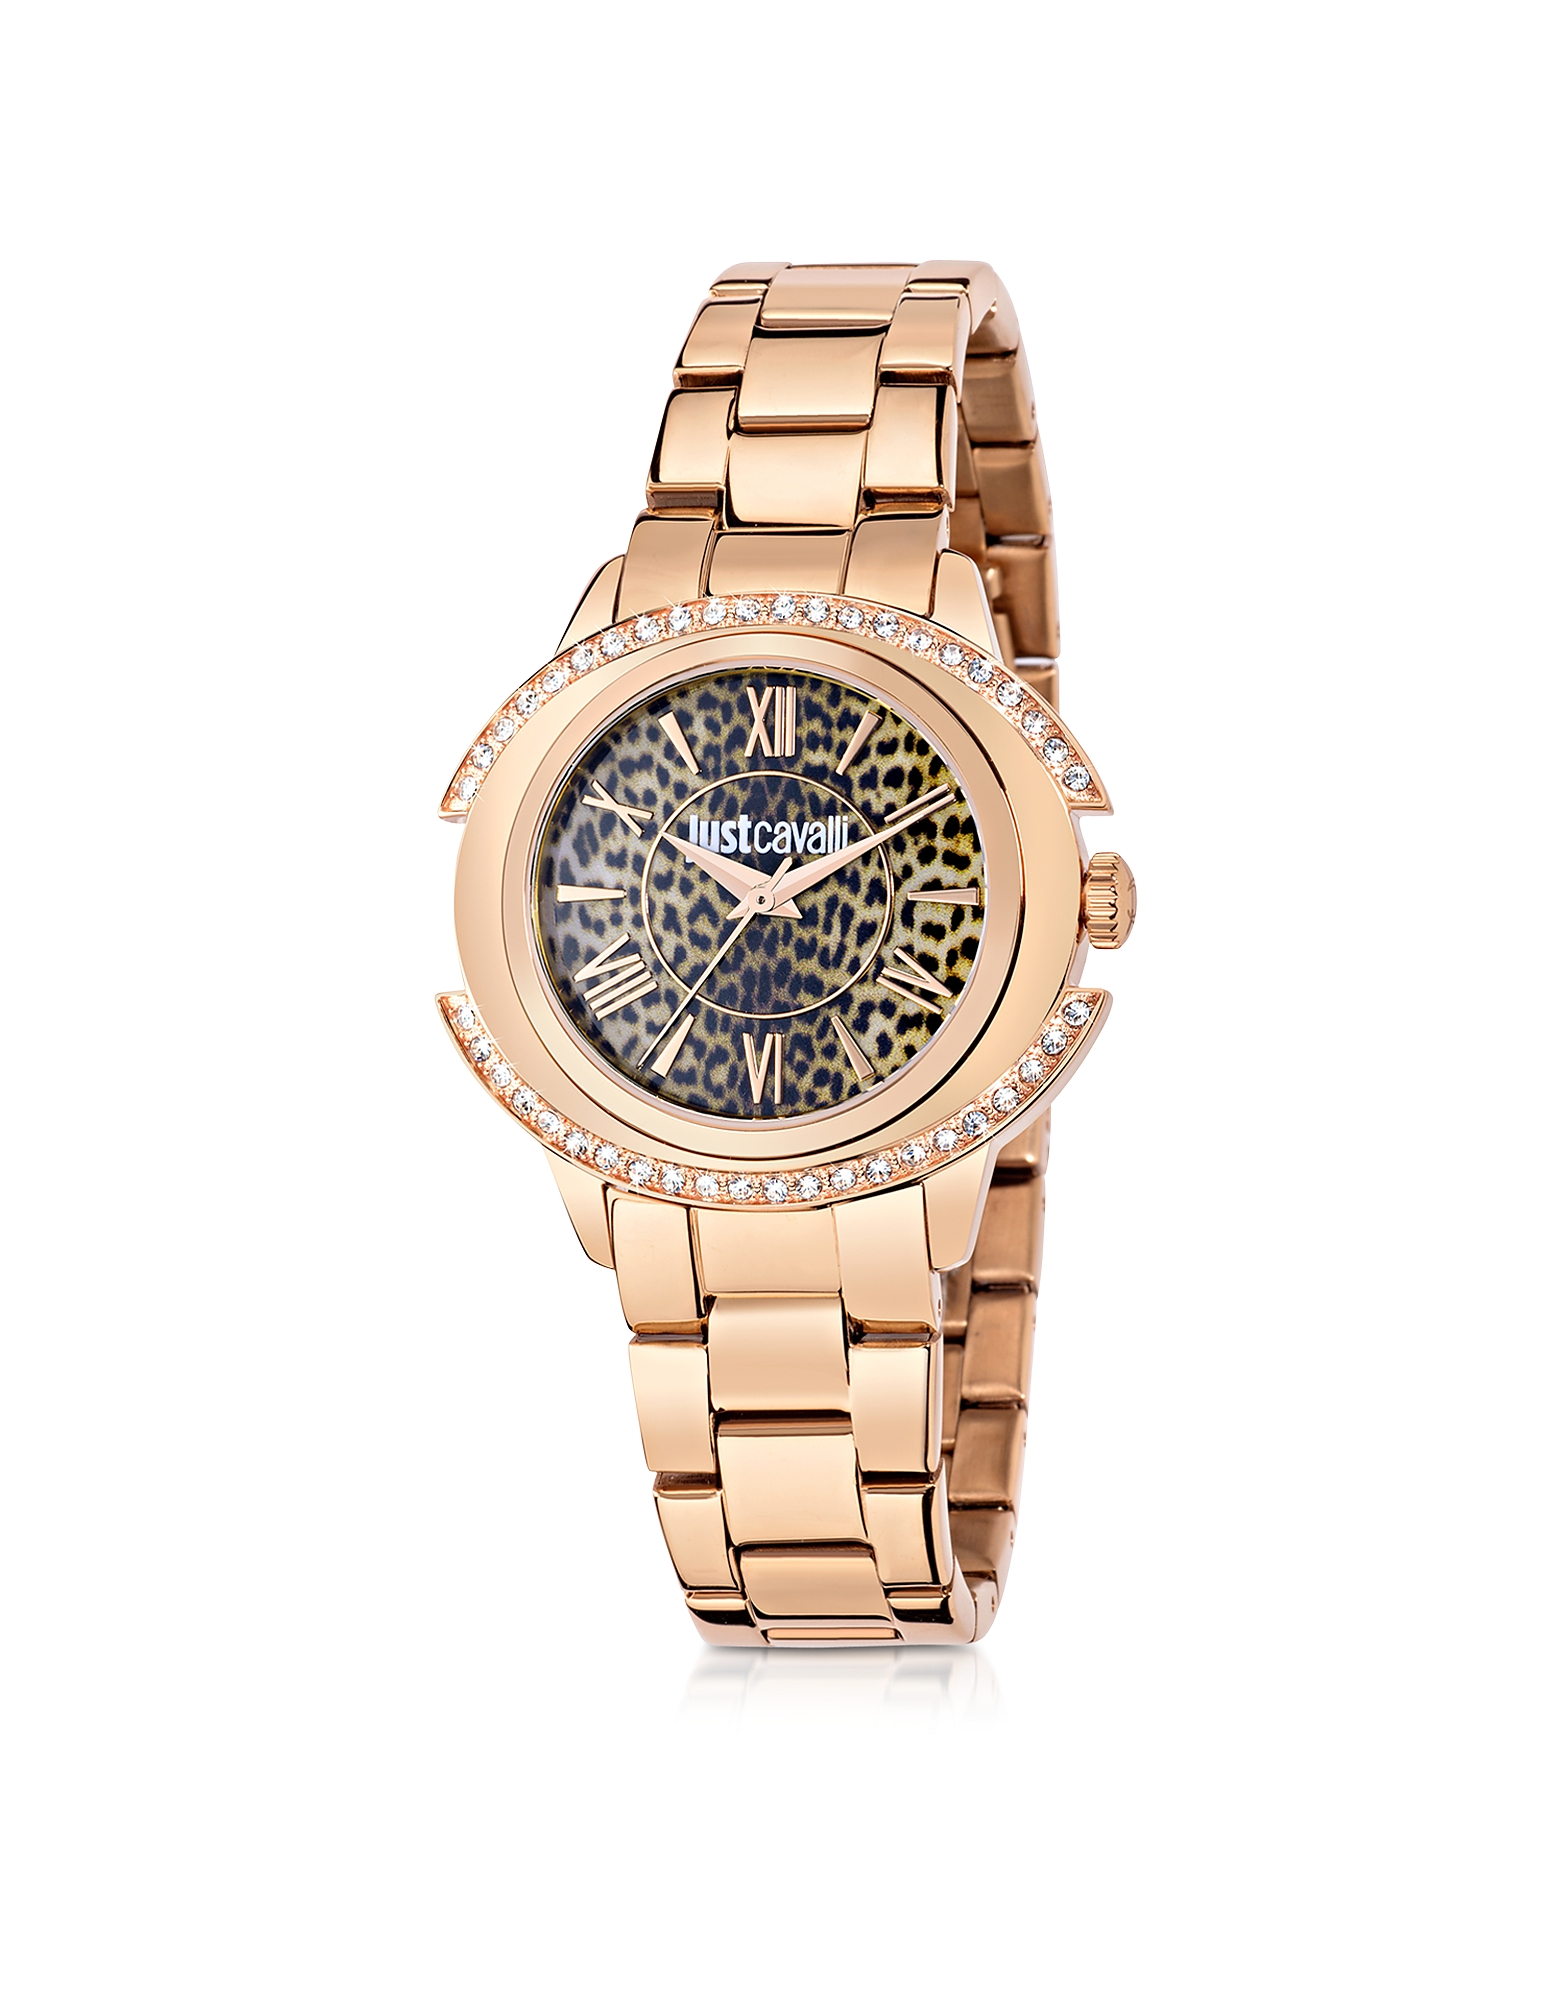 Image of Just Cavalli Designer Women's Watches, Just Decor Rose Gold Tone Stainless Steel Women's Watch